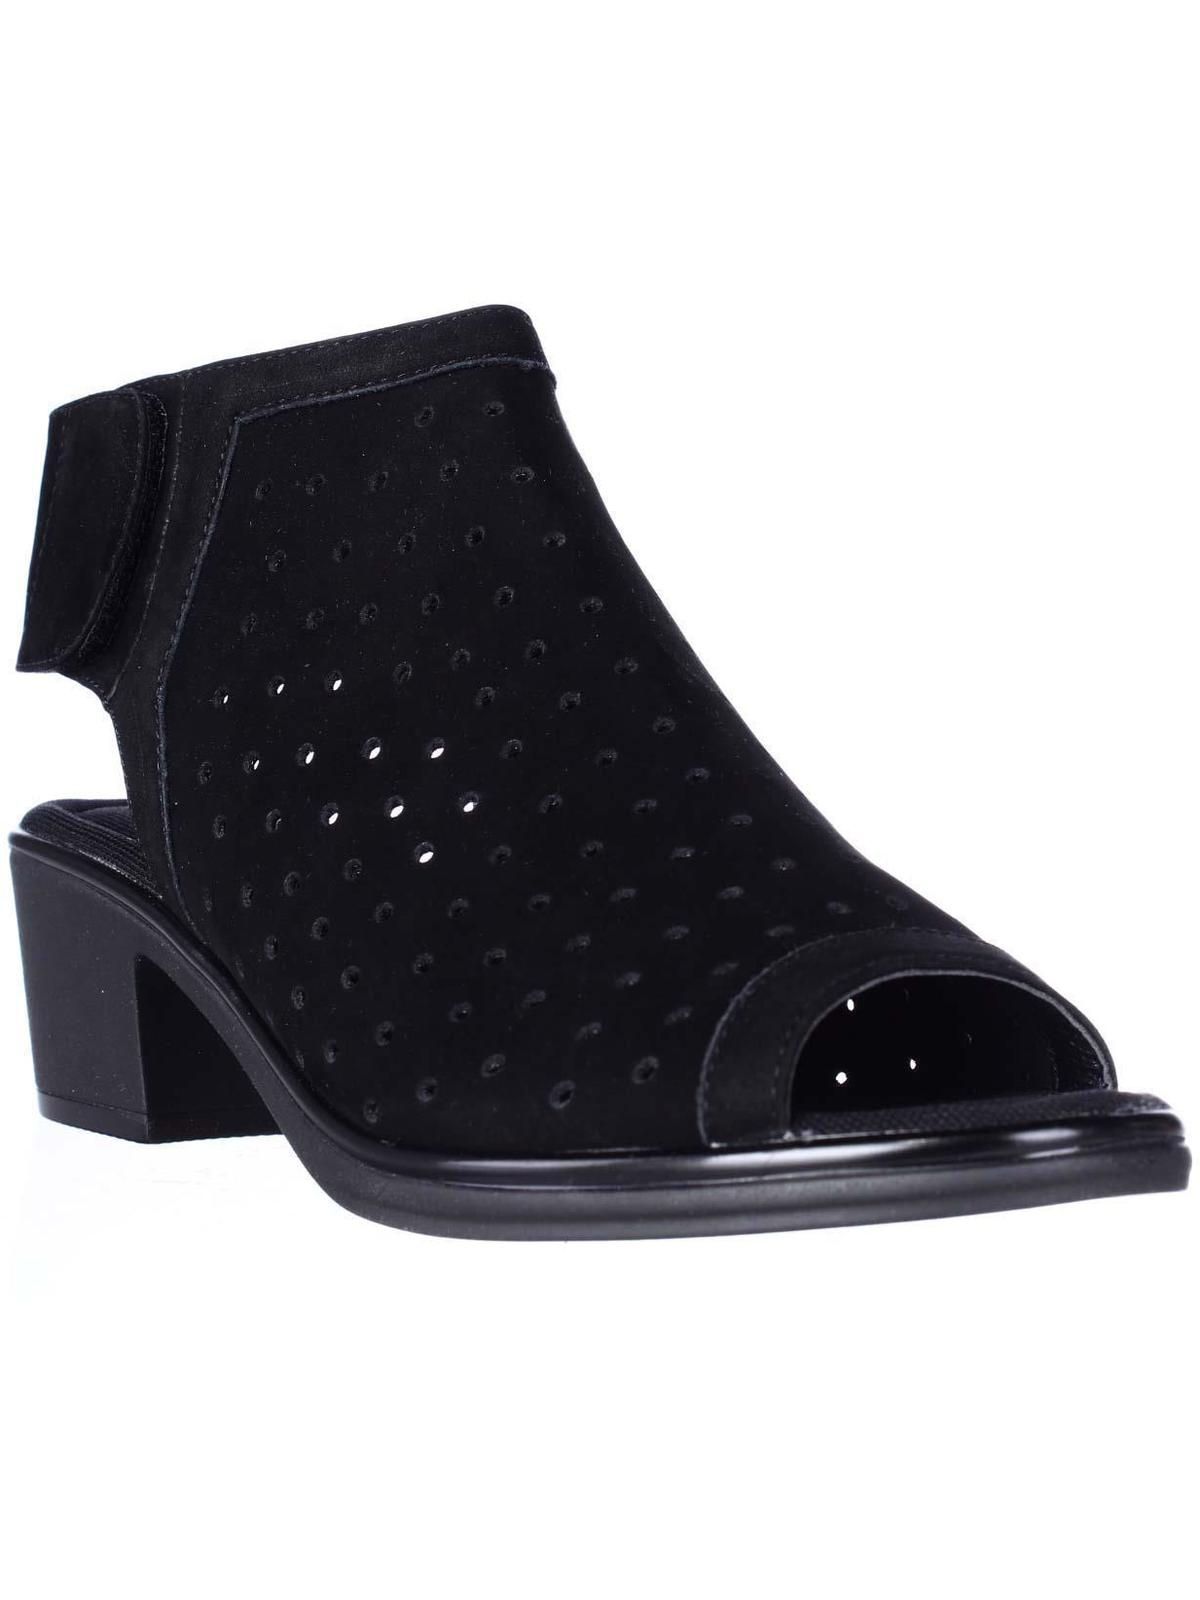 Womens STEVEN by Steve Madden Phoebiey Perforated Caged Sandals, Black, 7 US